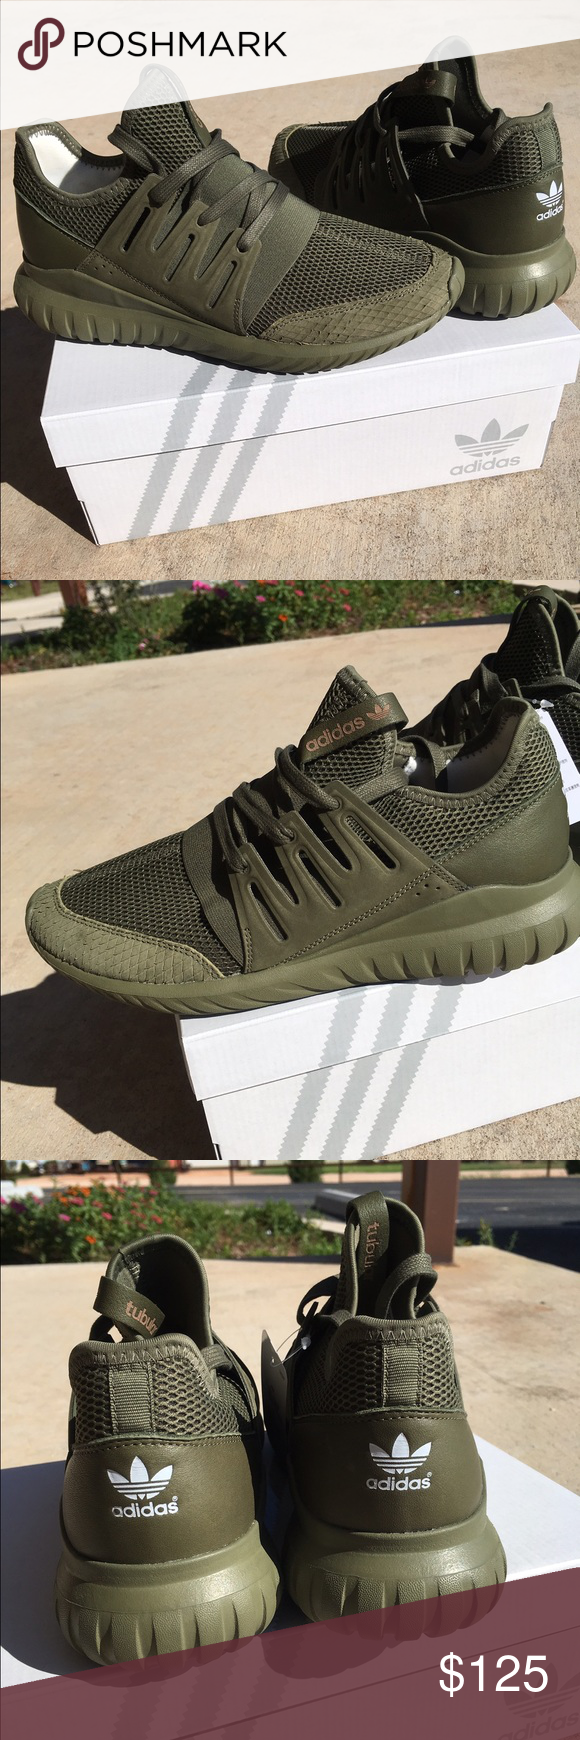 Adidas shoes Custom mi tubular radial adidas shoes for women size 9 in  olive cargo color.. gorgeous shoes brand new! Adidas Shoes Athletic Shoes d46542ad9